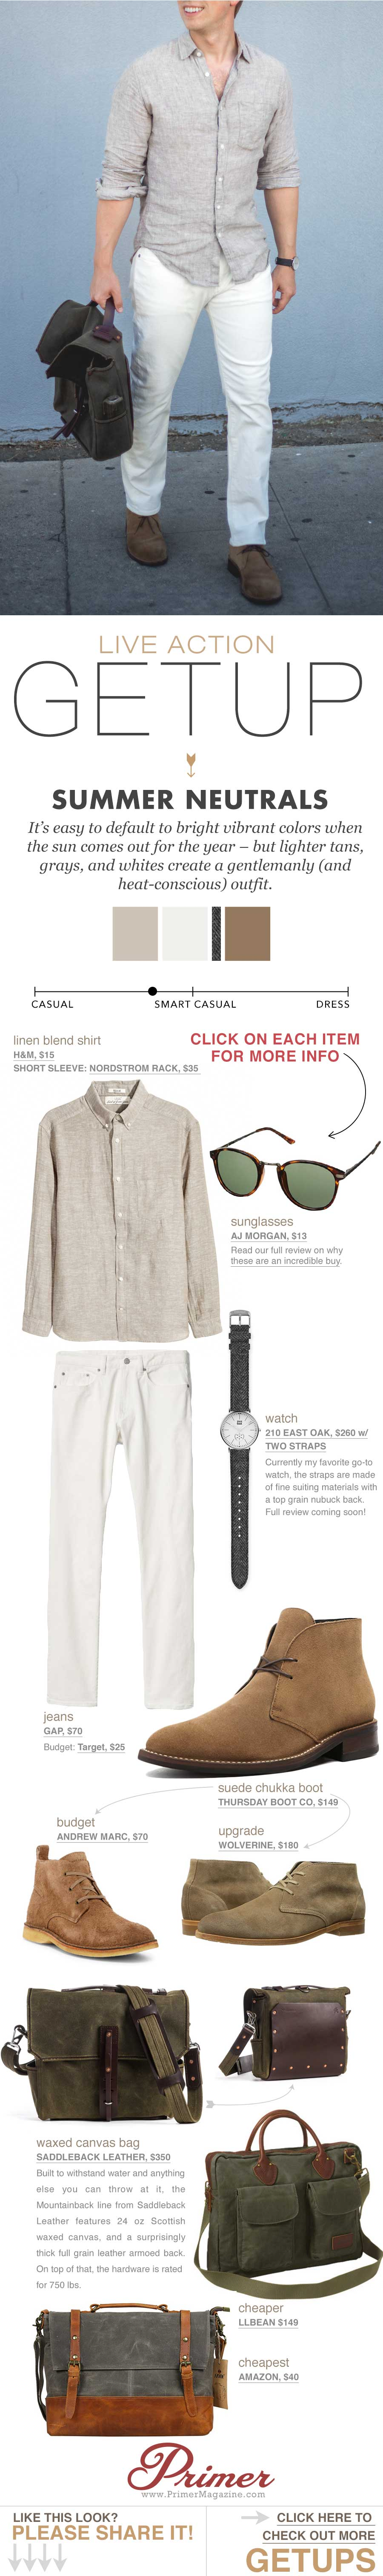 men's summer outfit ideas   white jeans